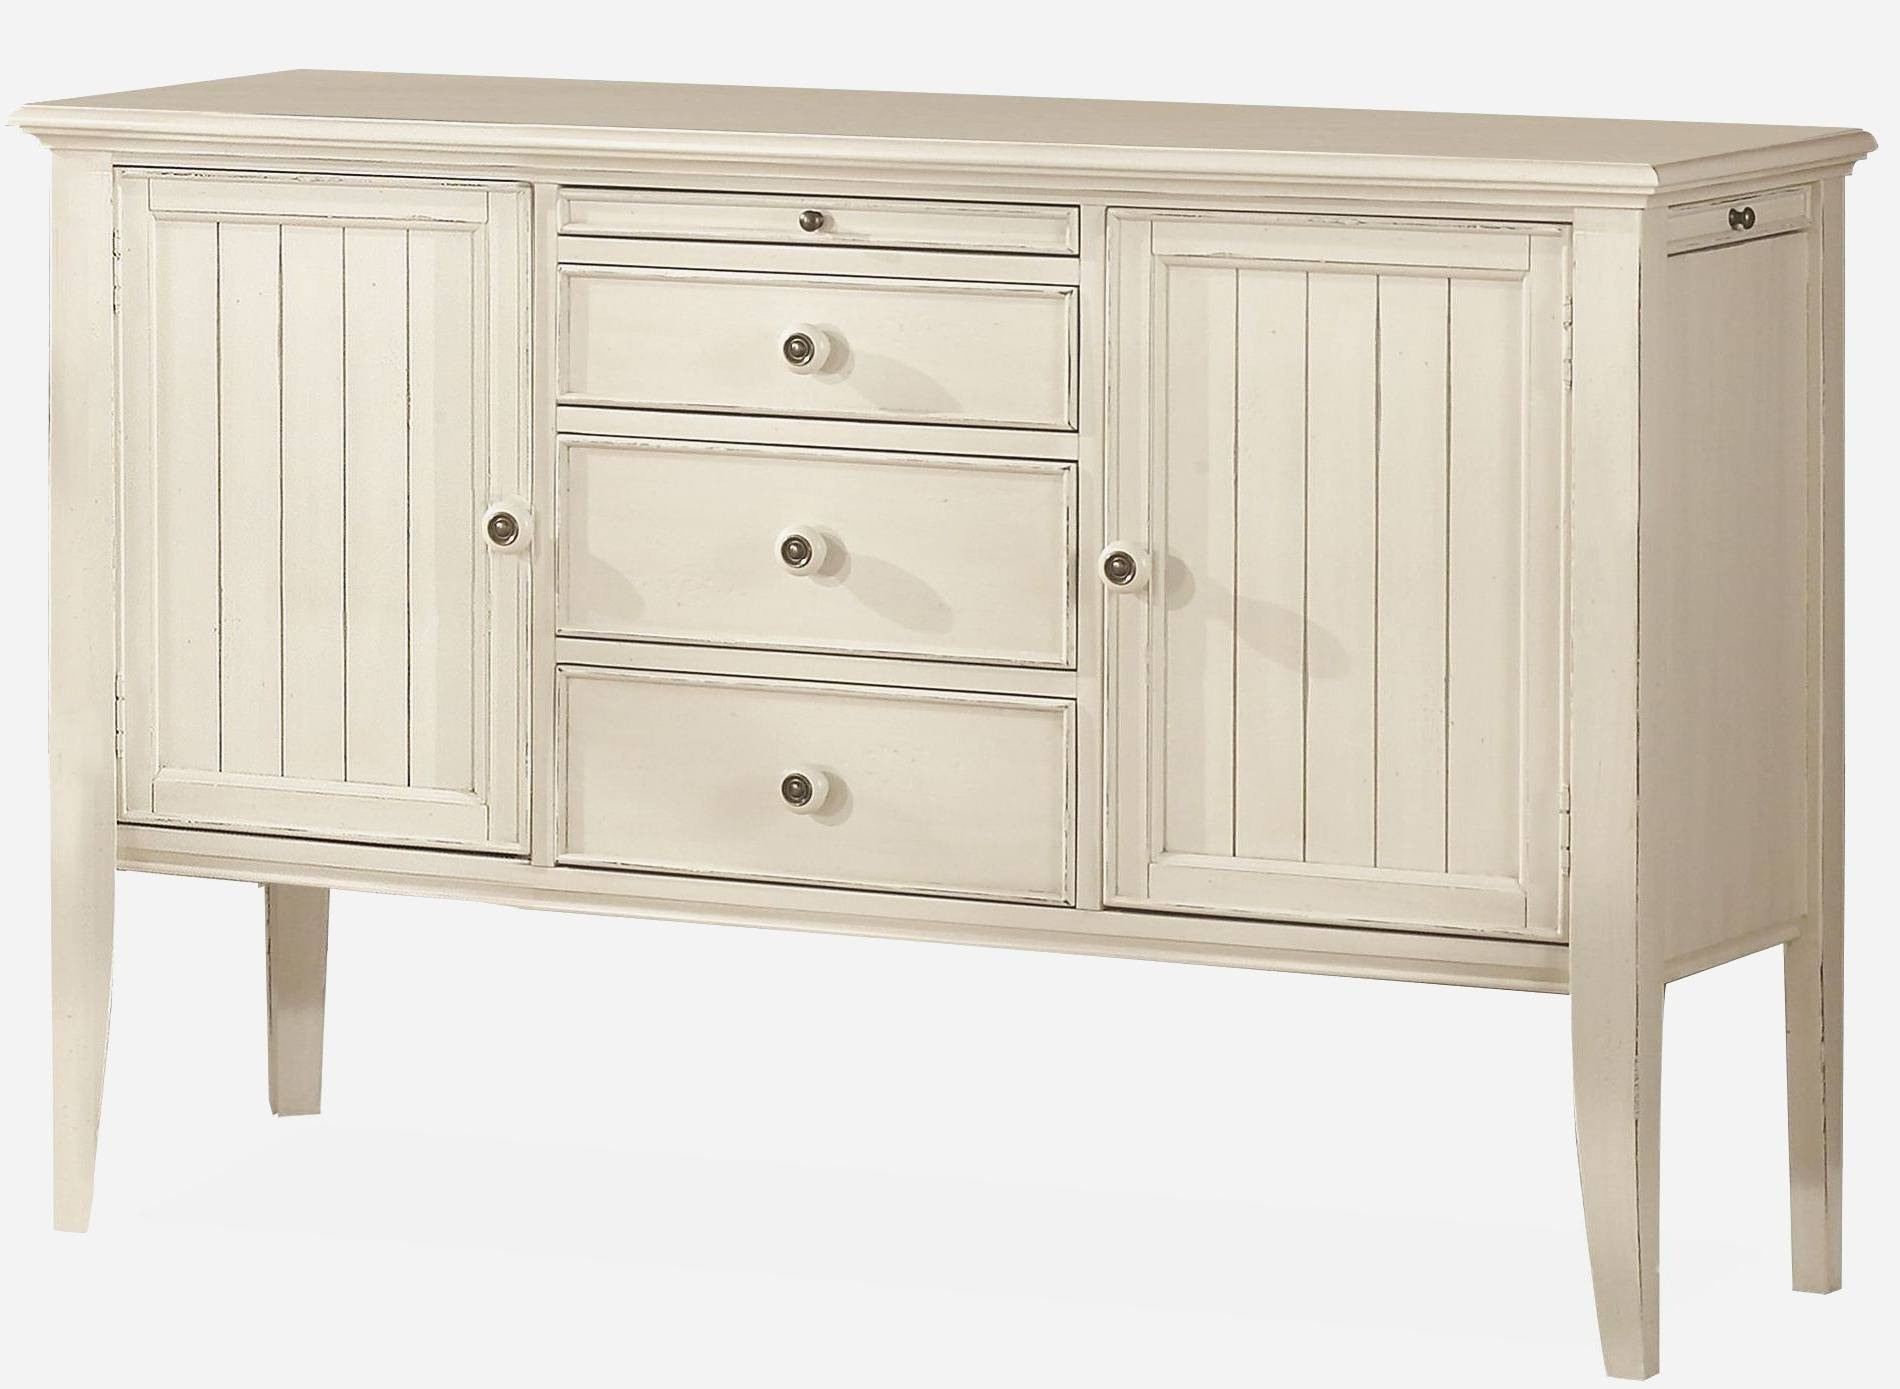 Small Sideboards And Buffets: Small Sideboards And Buffets Great Throughout Small Sideboards And Buffets (#15 of 15)